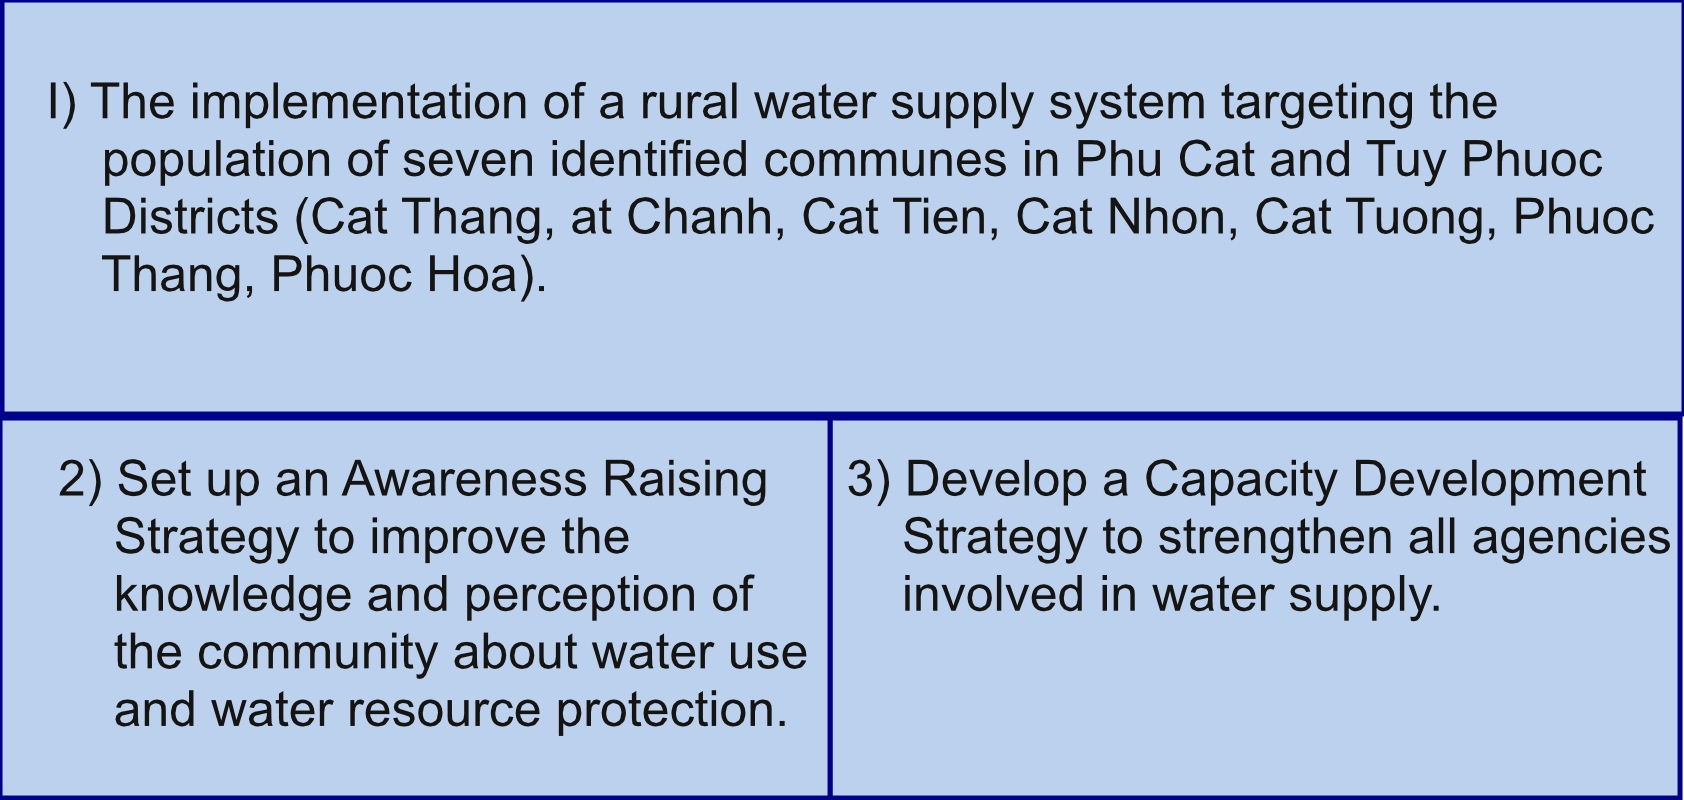 Rural Water Supply System